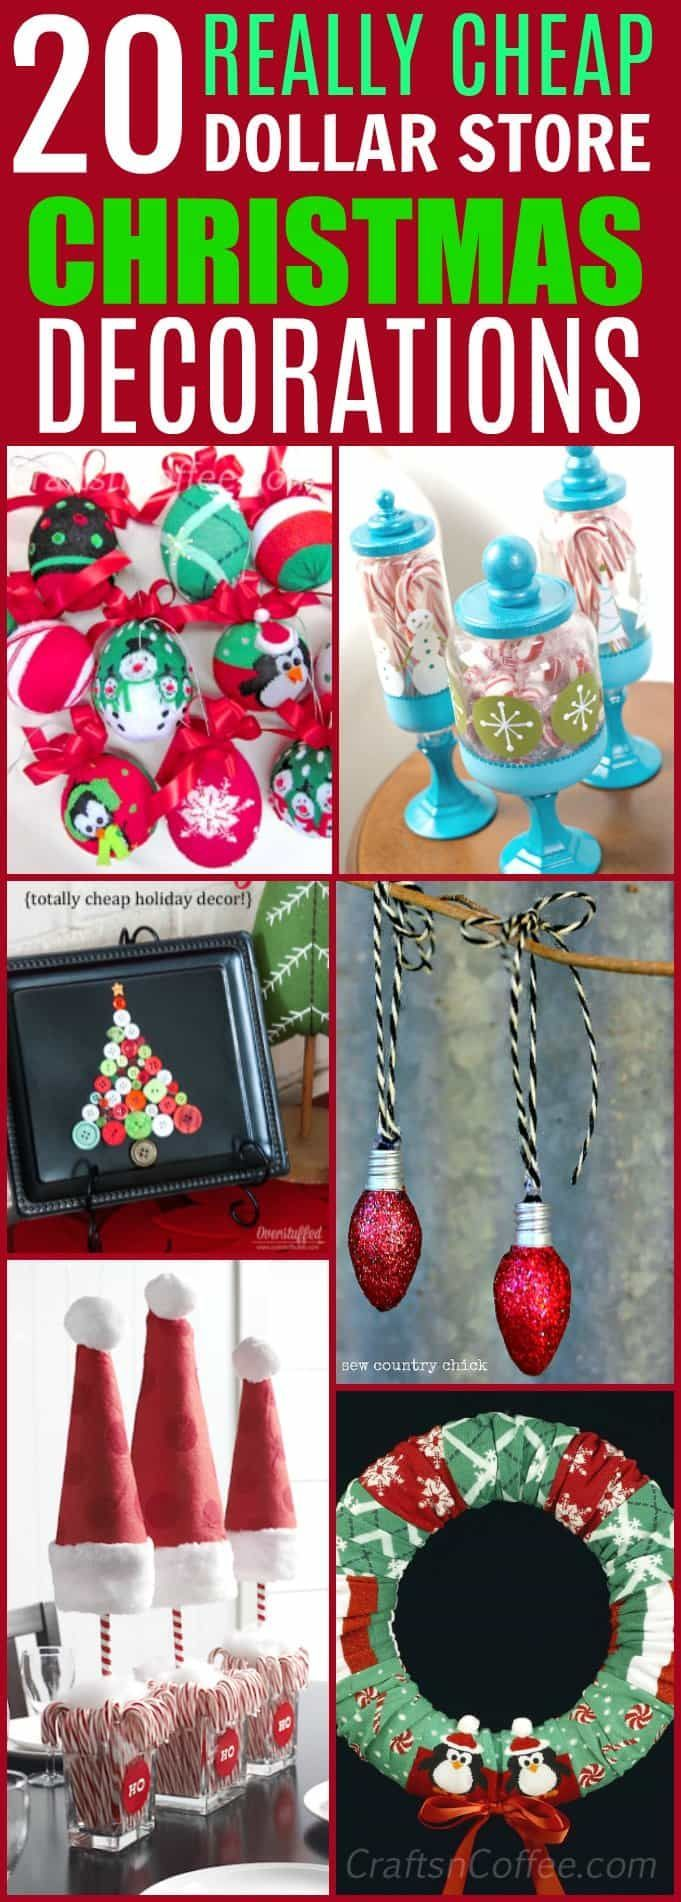 Dollar General Christmas Decorations.20 Easy And Cheap Dollar Store Christmas Decorations You Can